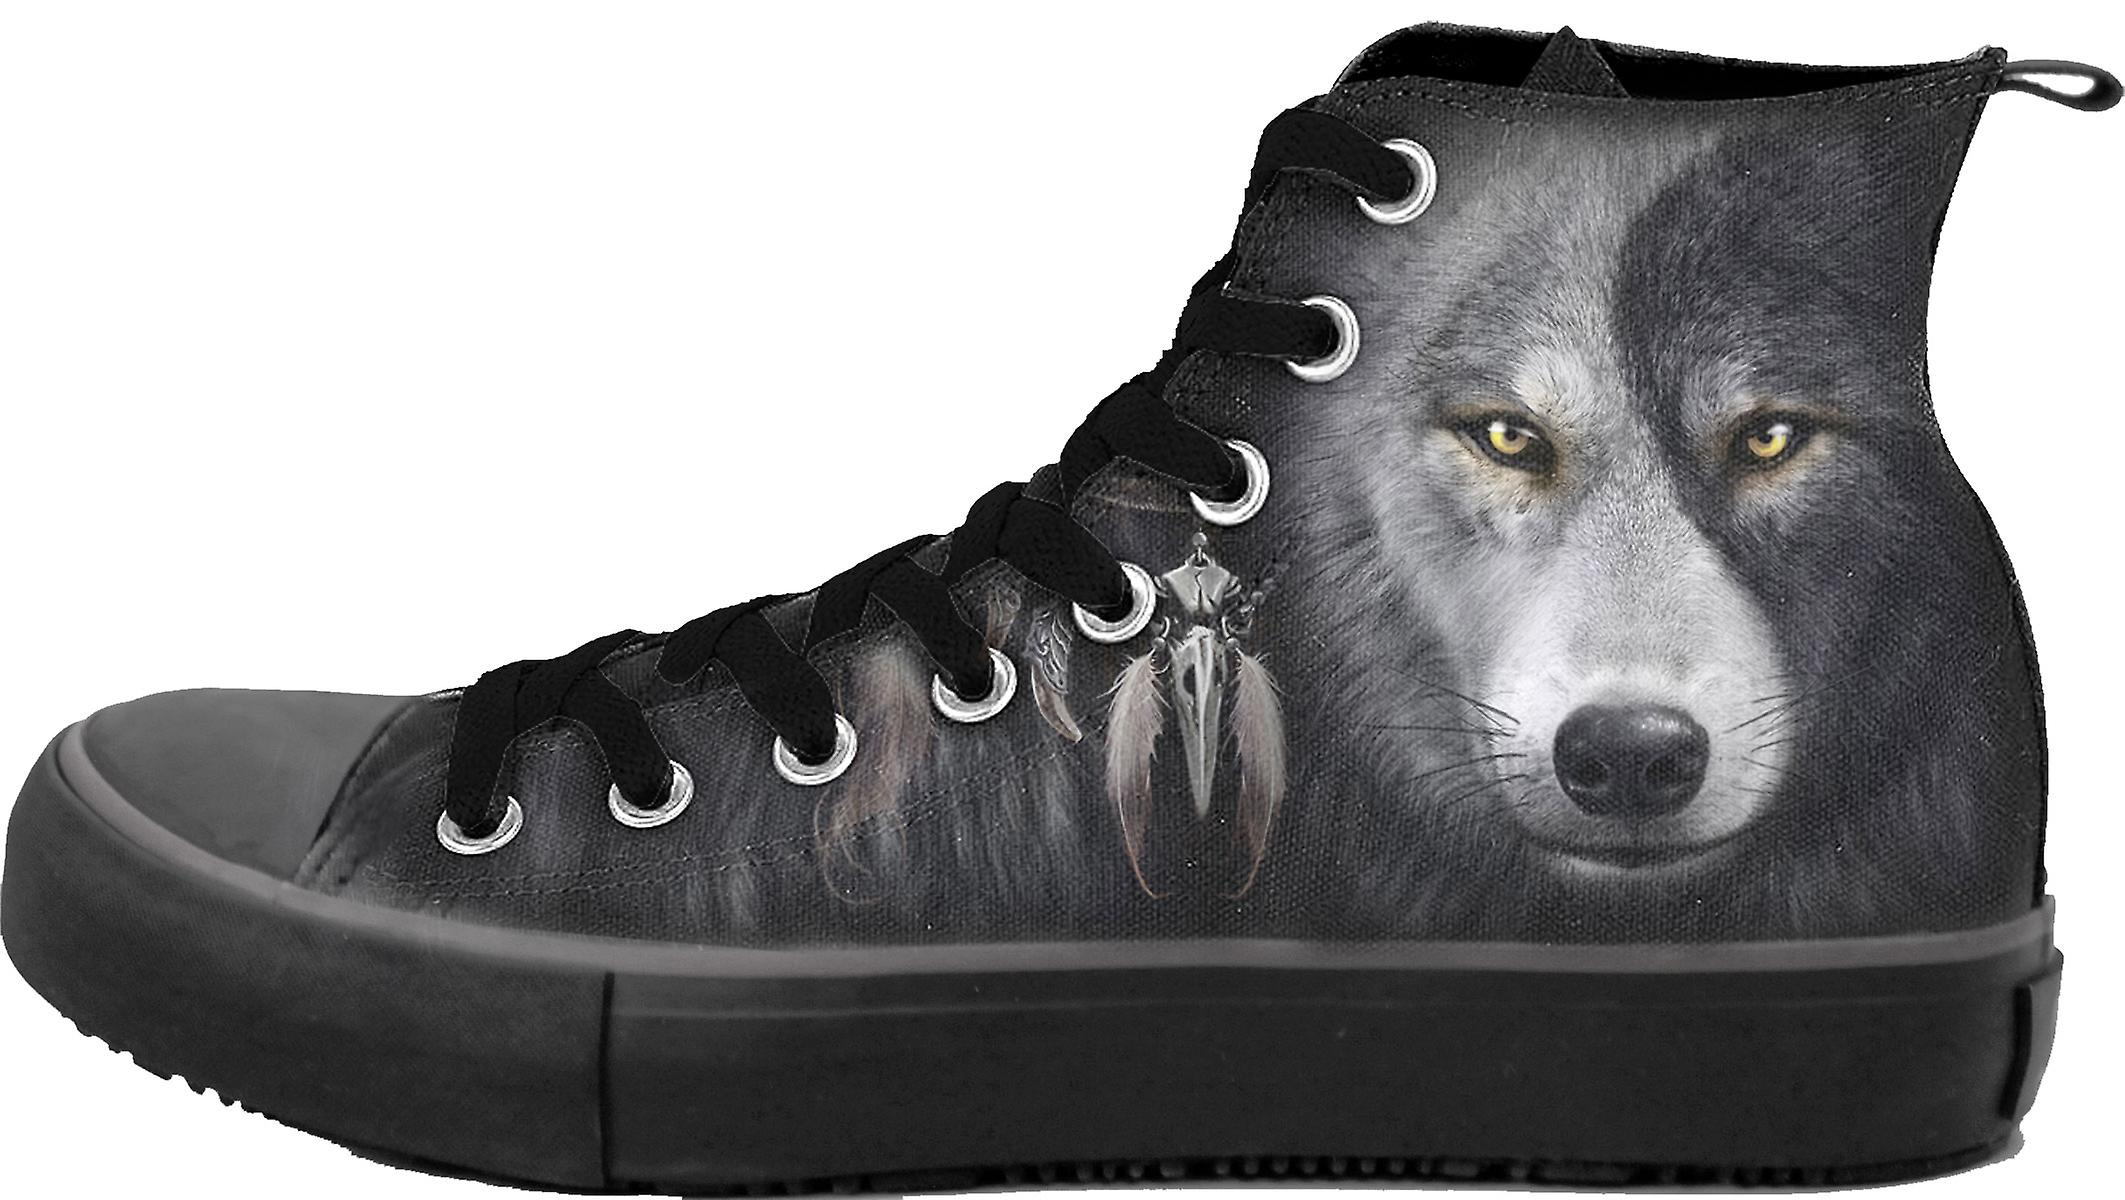 Spiral Direct Gothic WOLF CHI - Sneakers - Men's High Top Laceup|Wolf|Yin Yang|Native American|Mystical